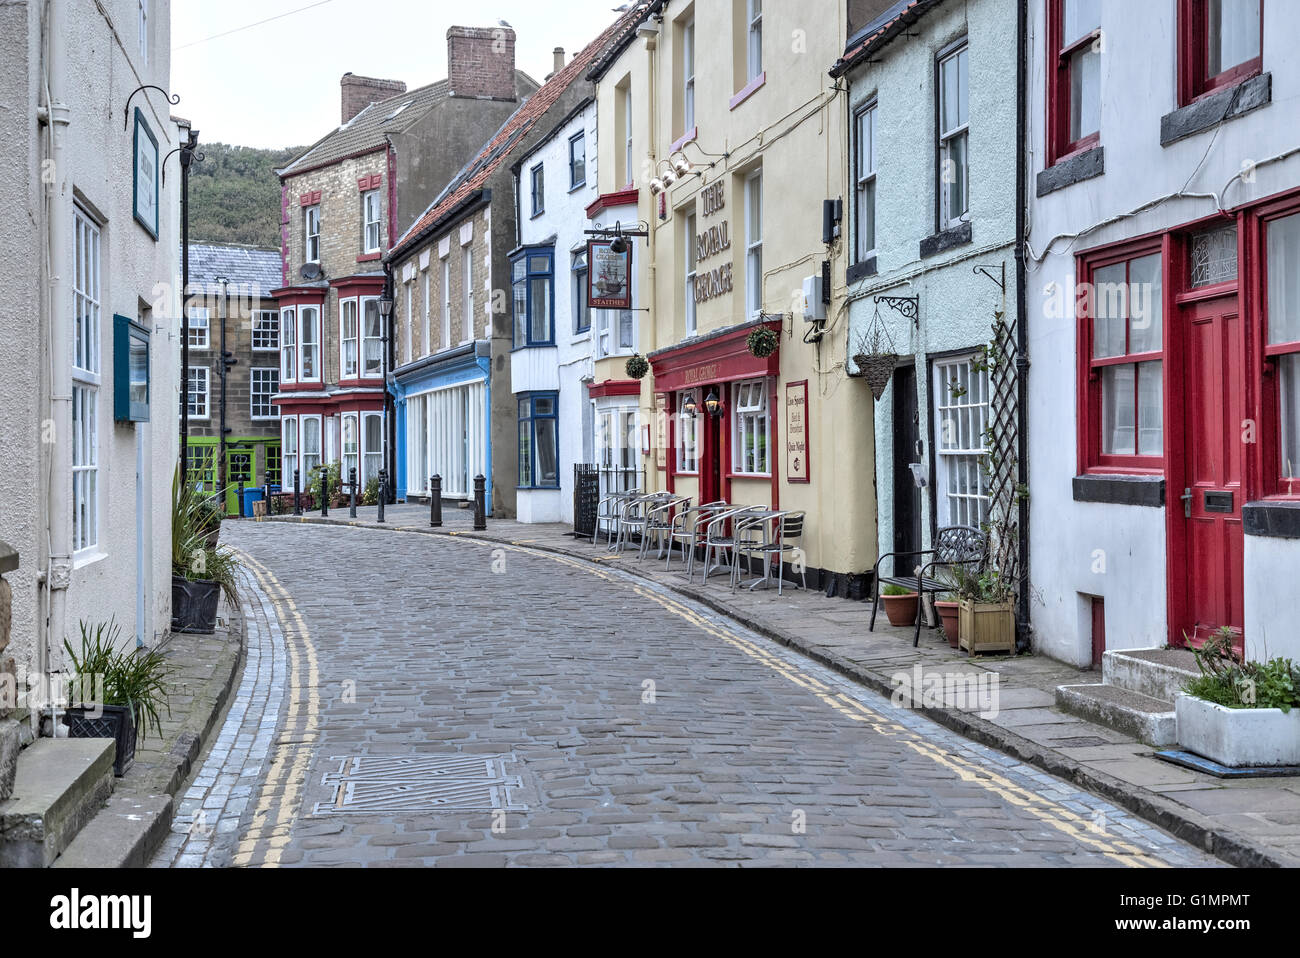 Staithes, Scarborough, Yorkshire, England, UK - Stock Image